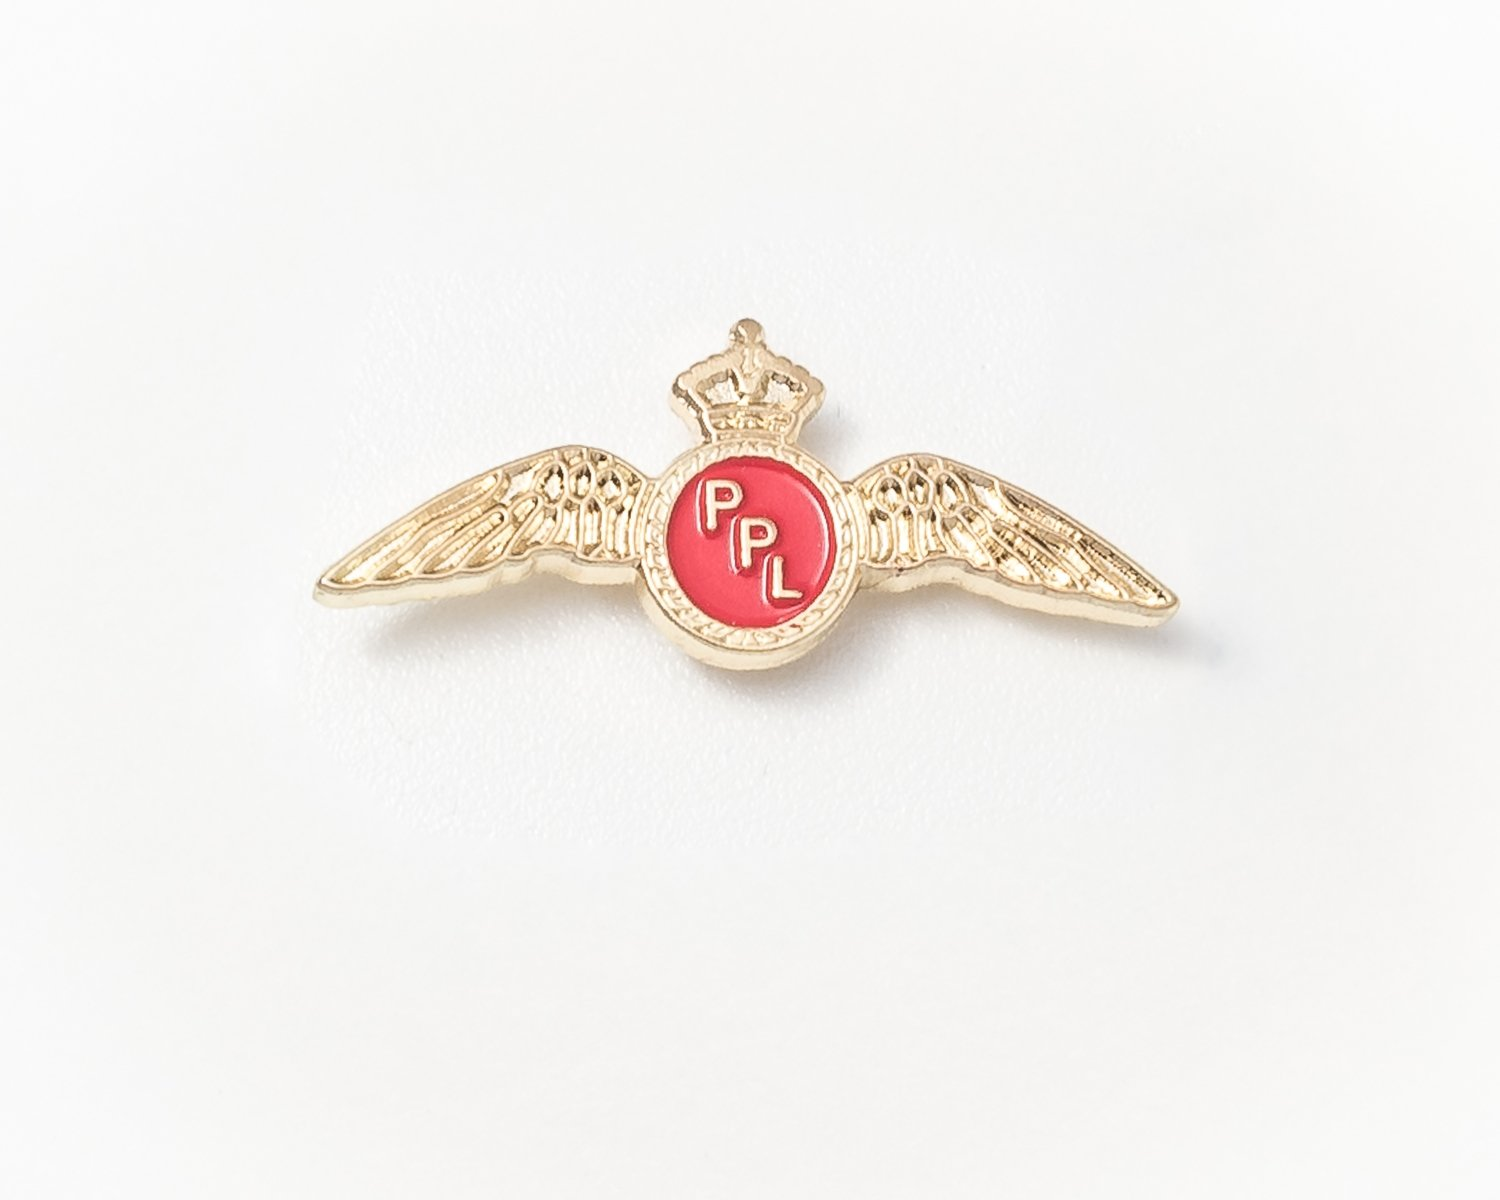 PPL Private Pilot's Wings Tie / Lapel Pin